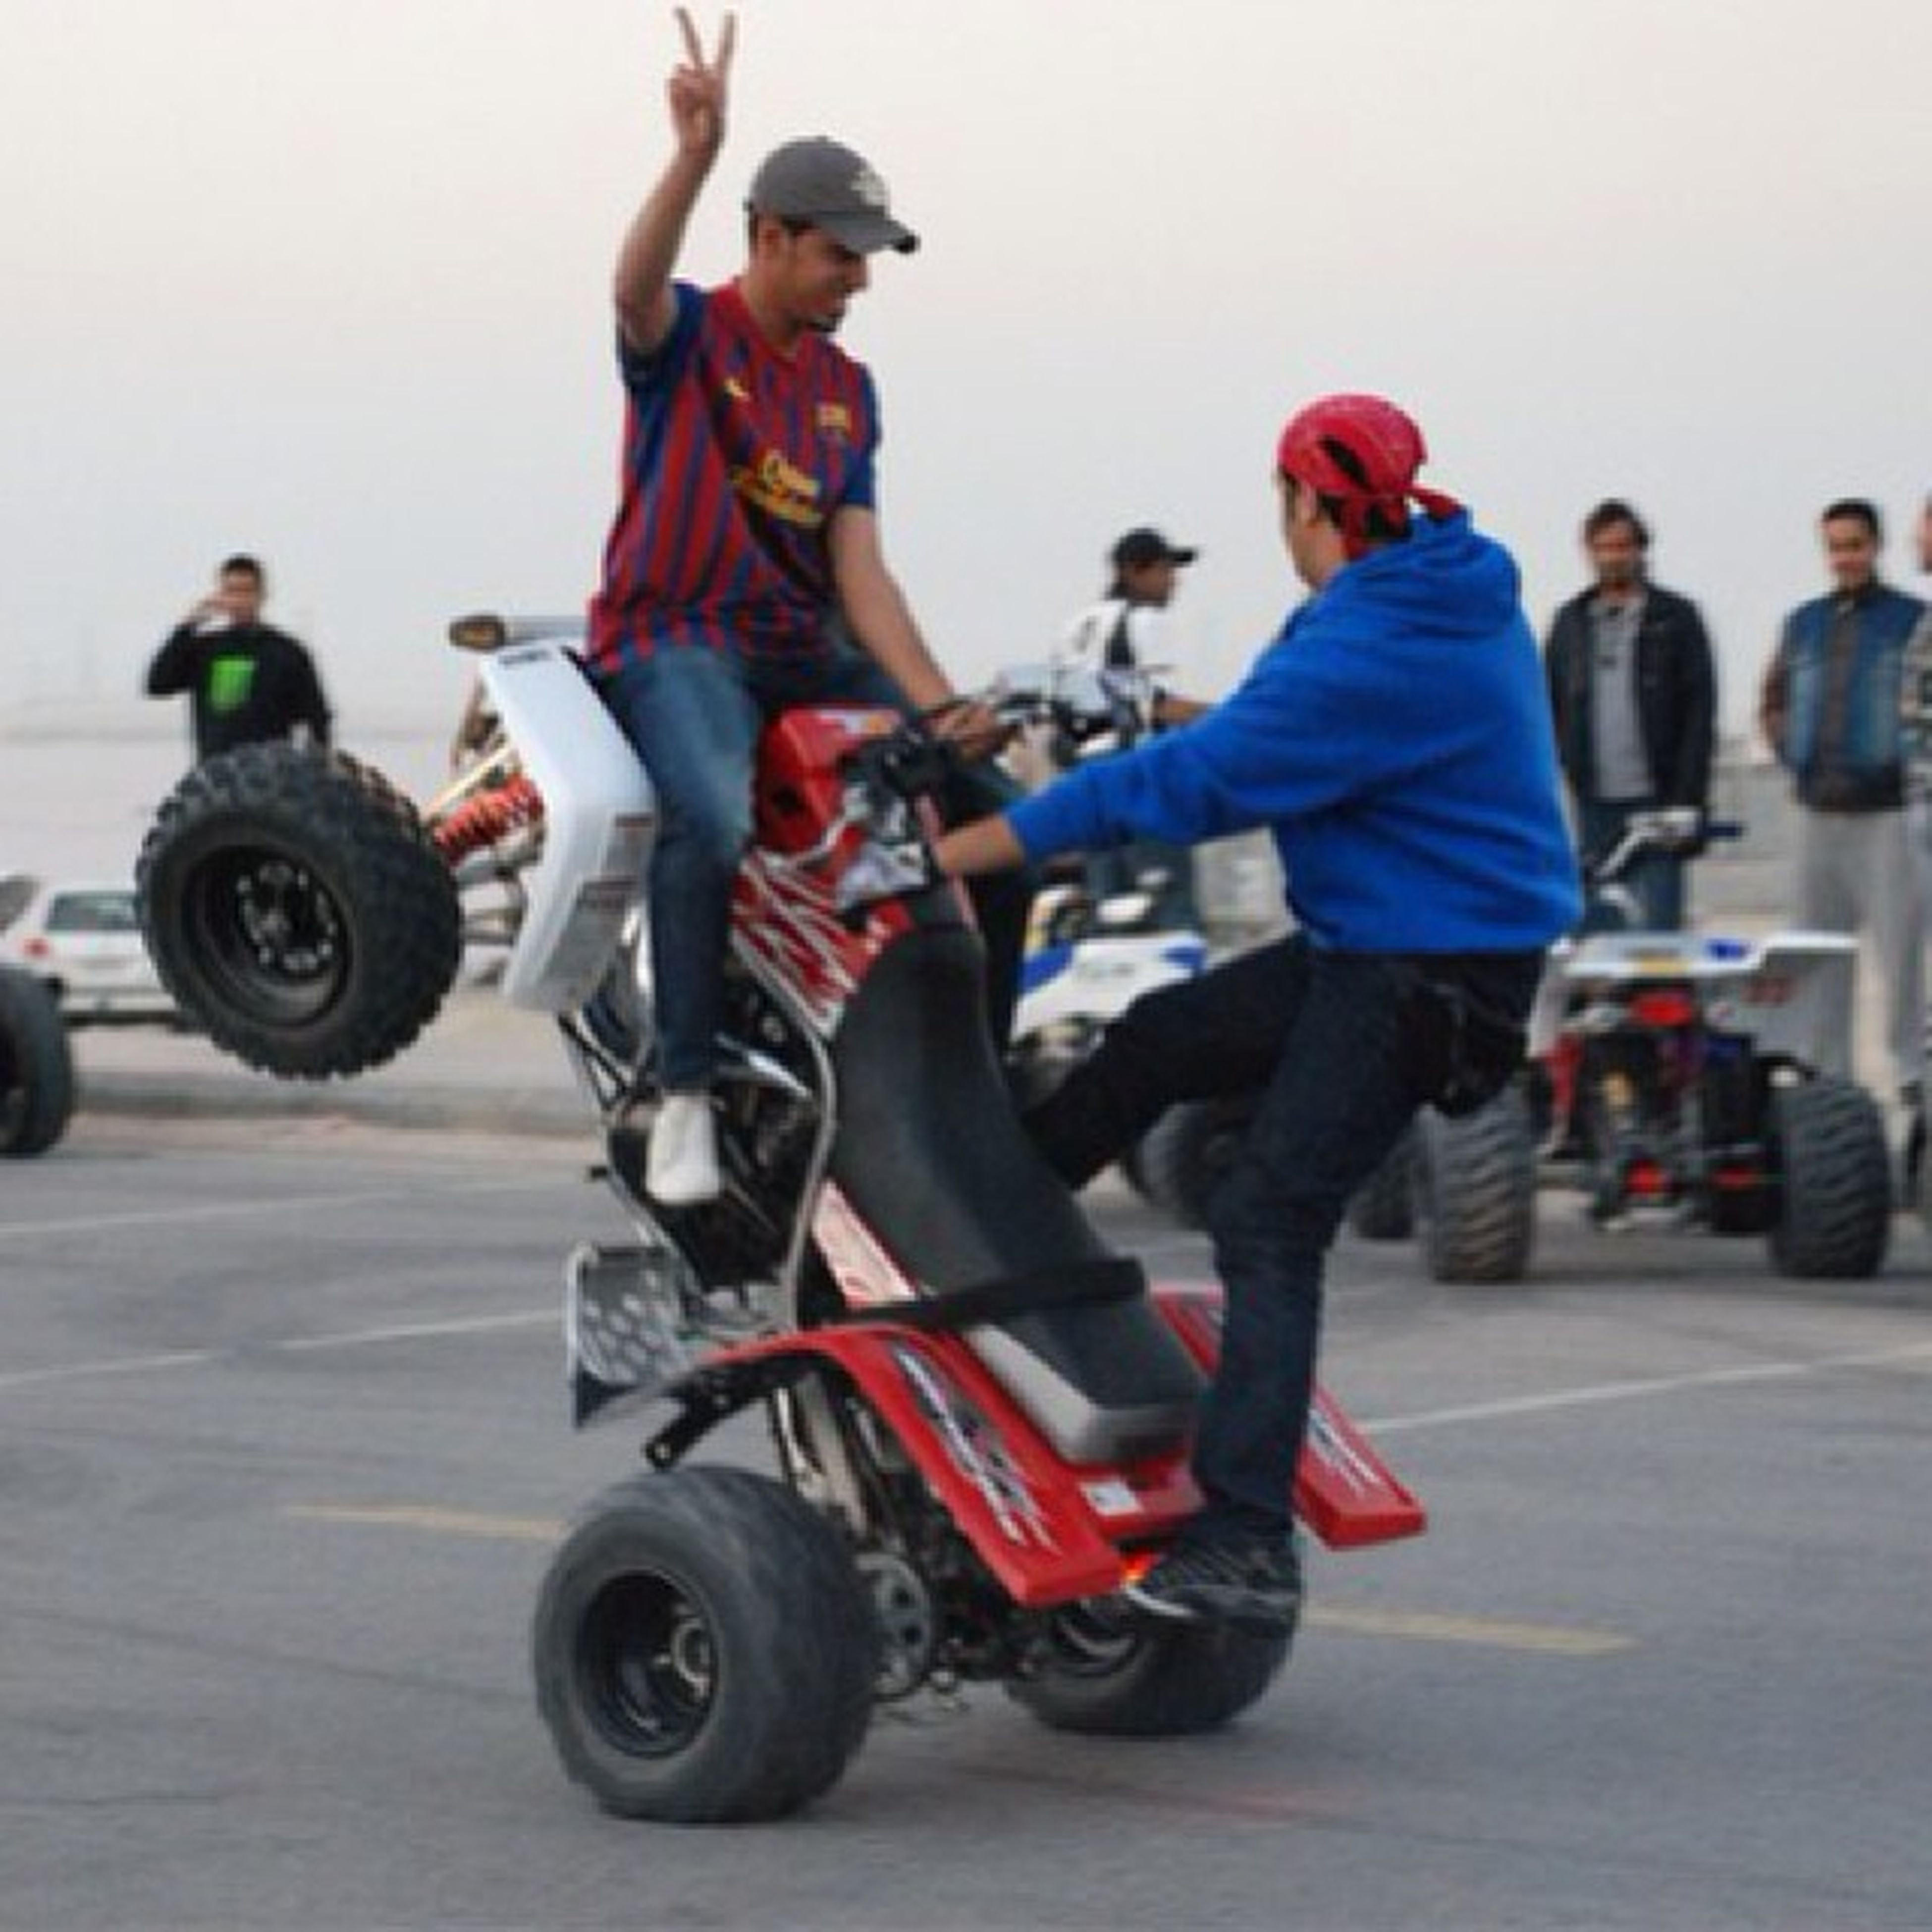 lifestyles, men, leisure activity, transportation, riding, full length, bicycle, land vehicle, skill, mode of transport, sport, motion, mid-air, person, casual clothing, large group of people, cycling, extreme sports, on the move